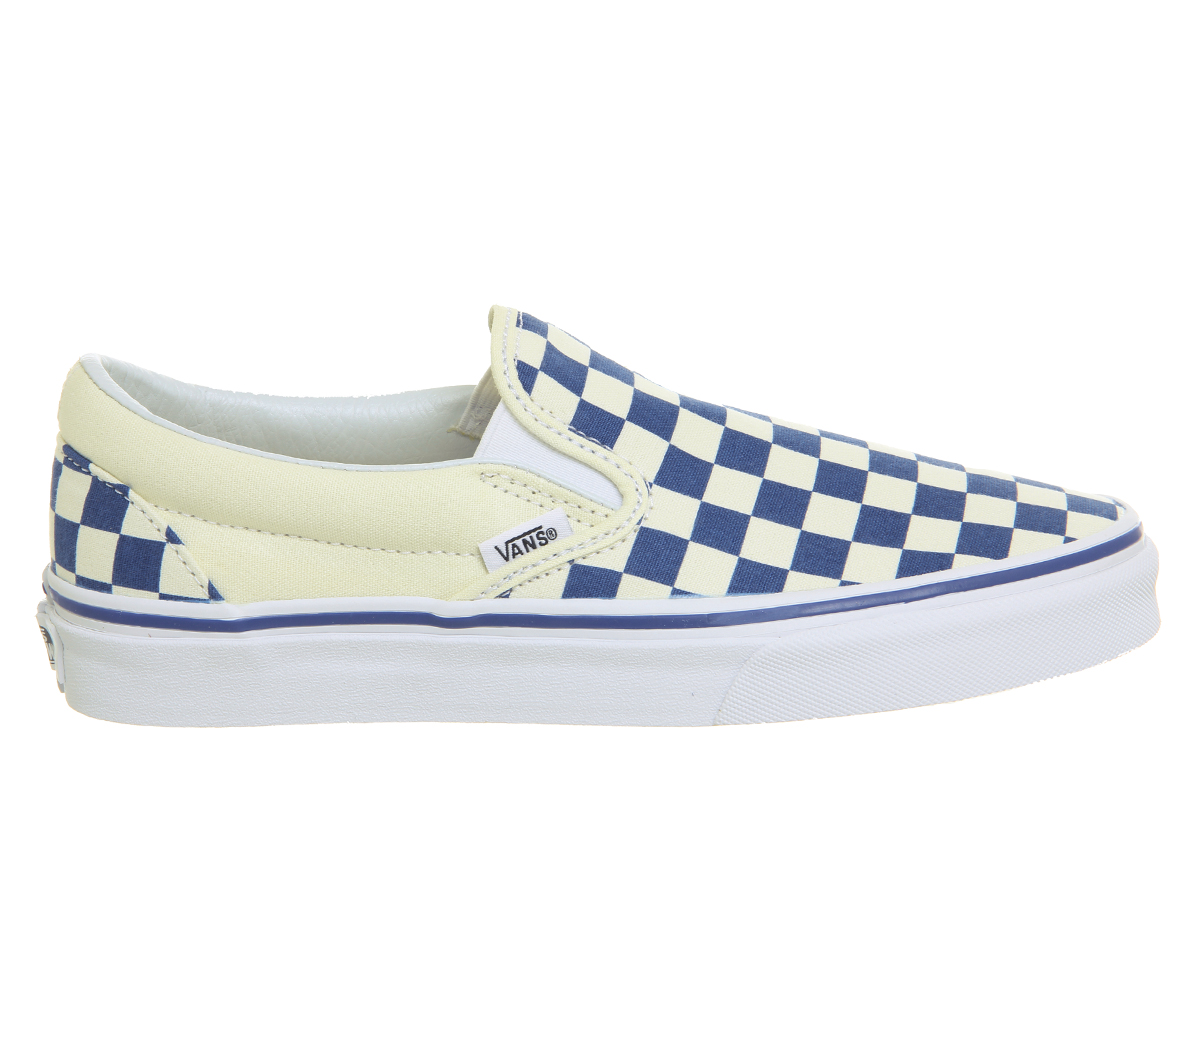 4d4f847a2074 Sentinel Mens Vans Vans Classic Slip On Trainers TRUE BLUE CLASSIC WHITE  CHECKERBOARD Tra